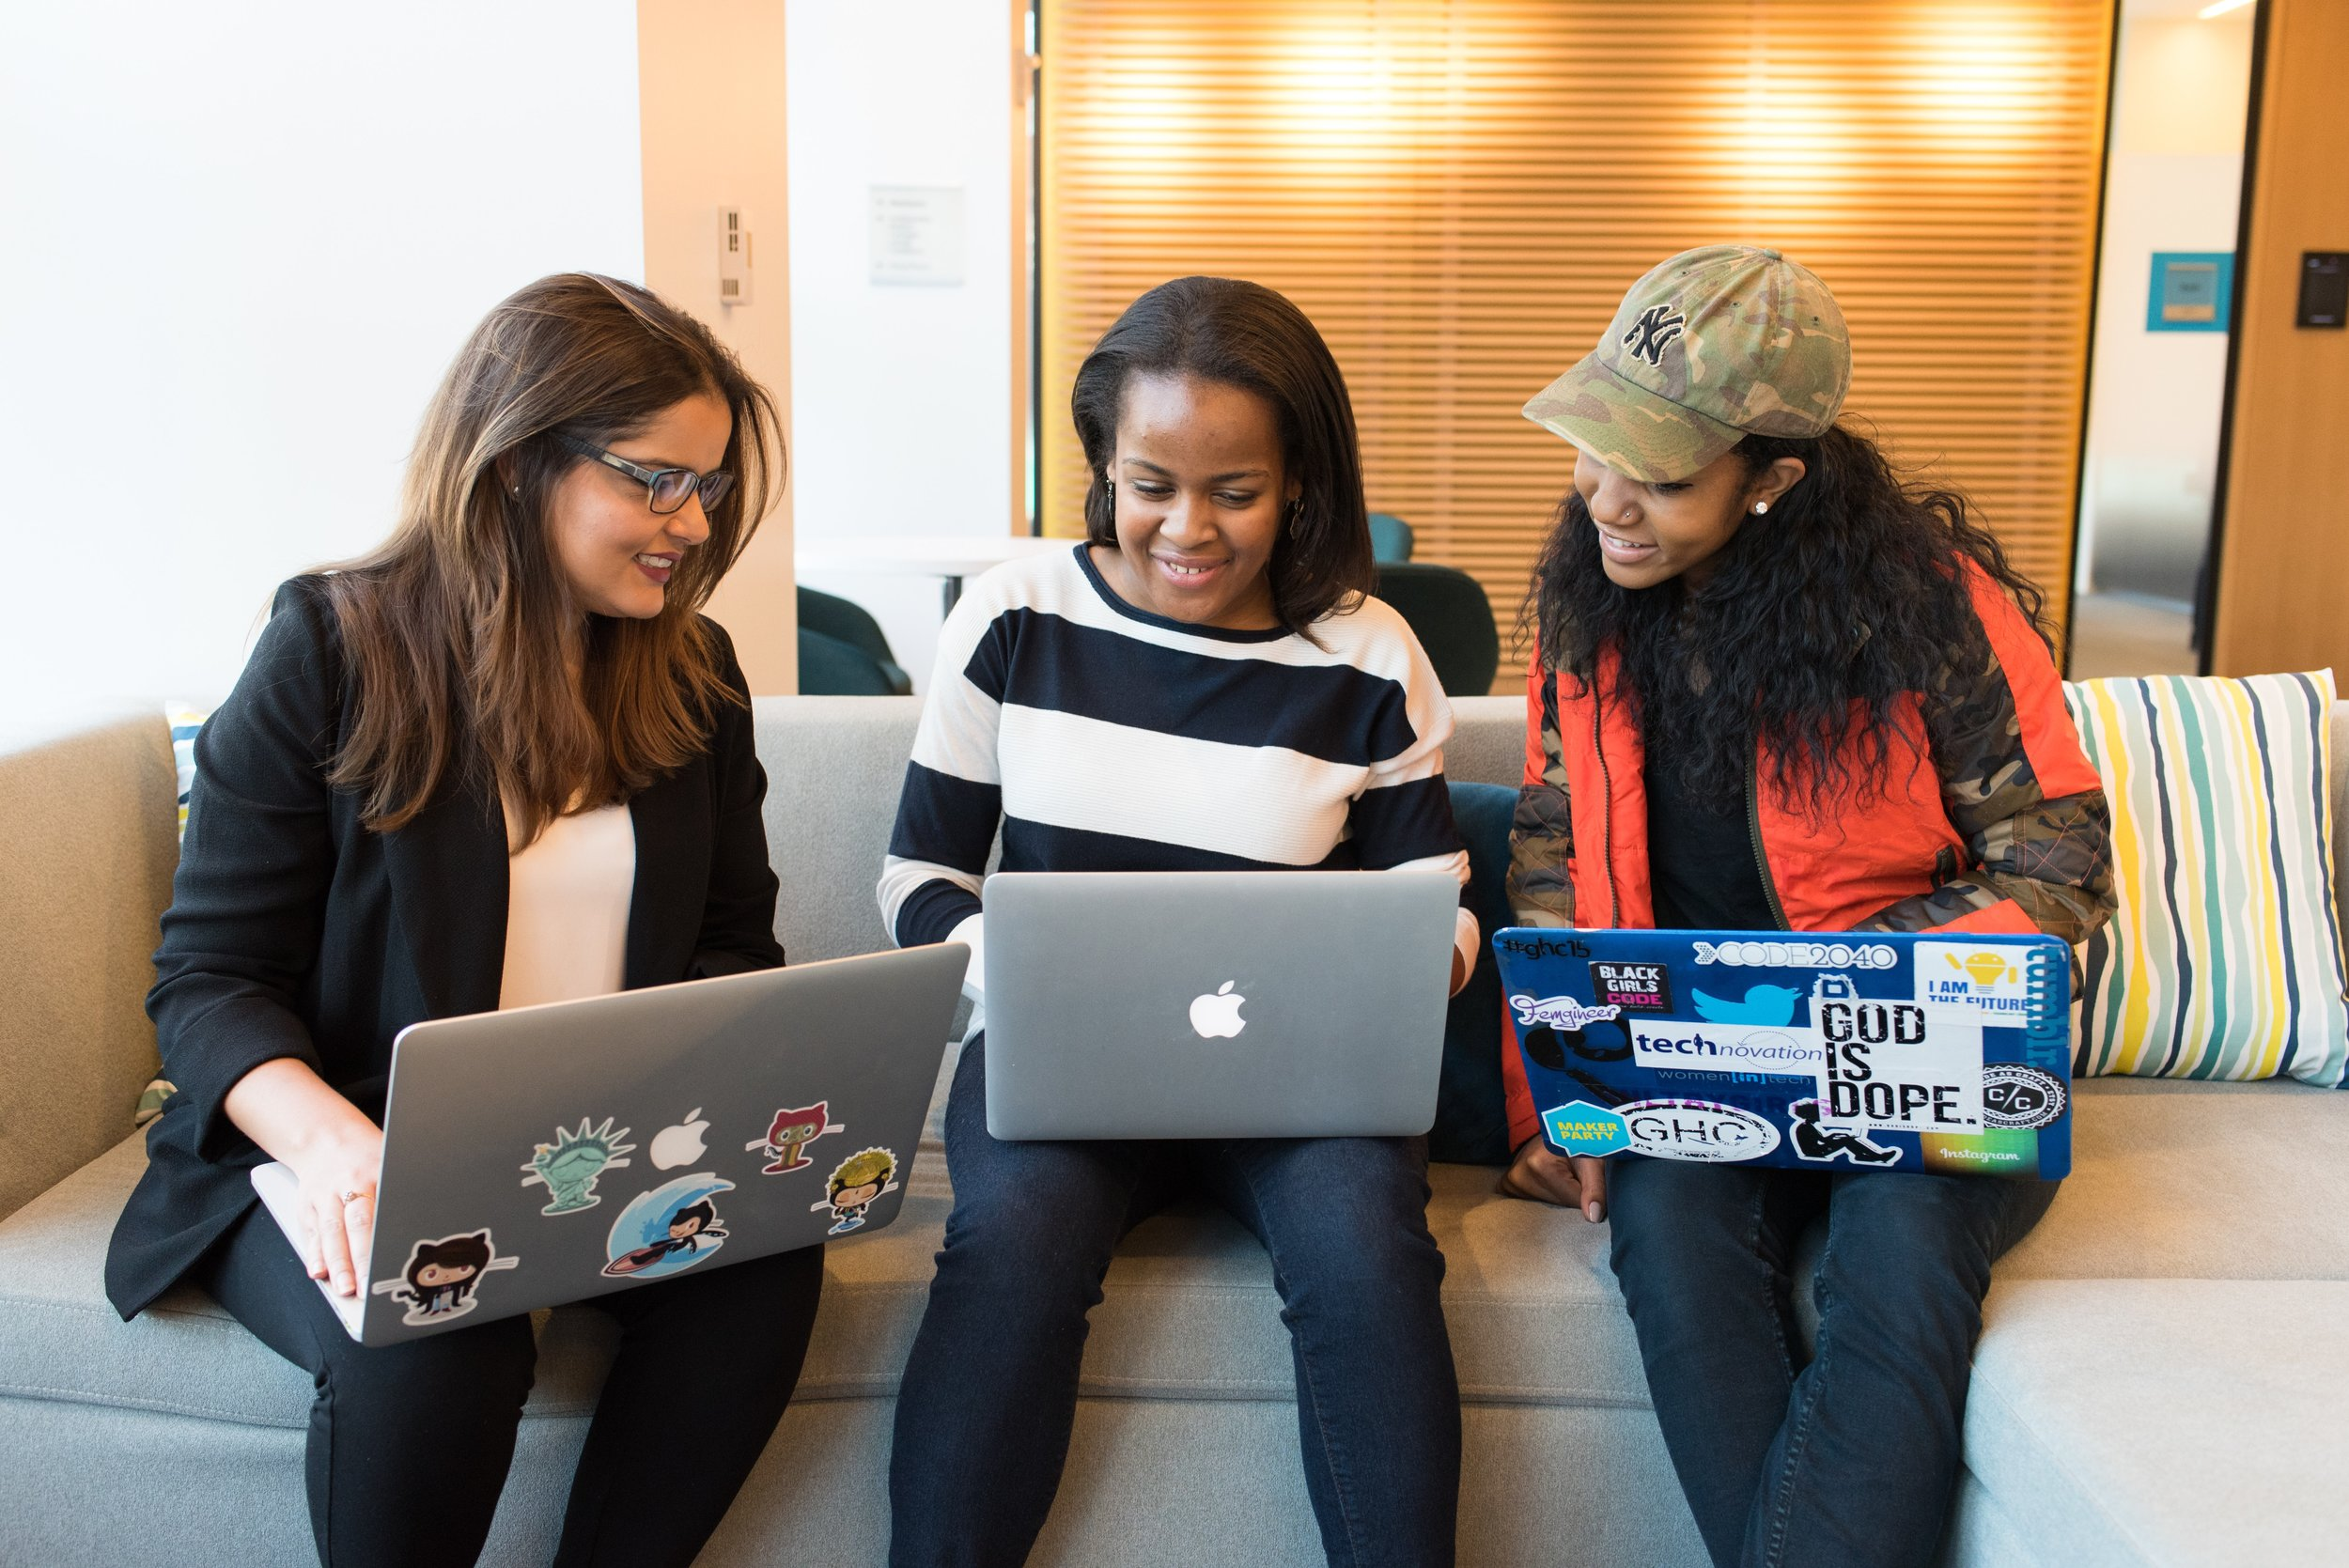 Learn About Bringing Startup Sisters to Your City. - Connect Female Entrepreneurs in your Community.